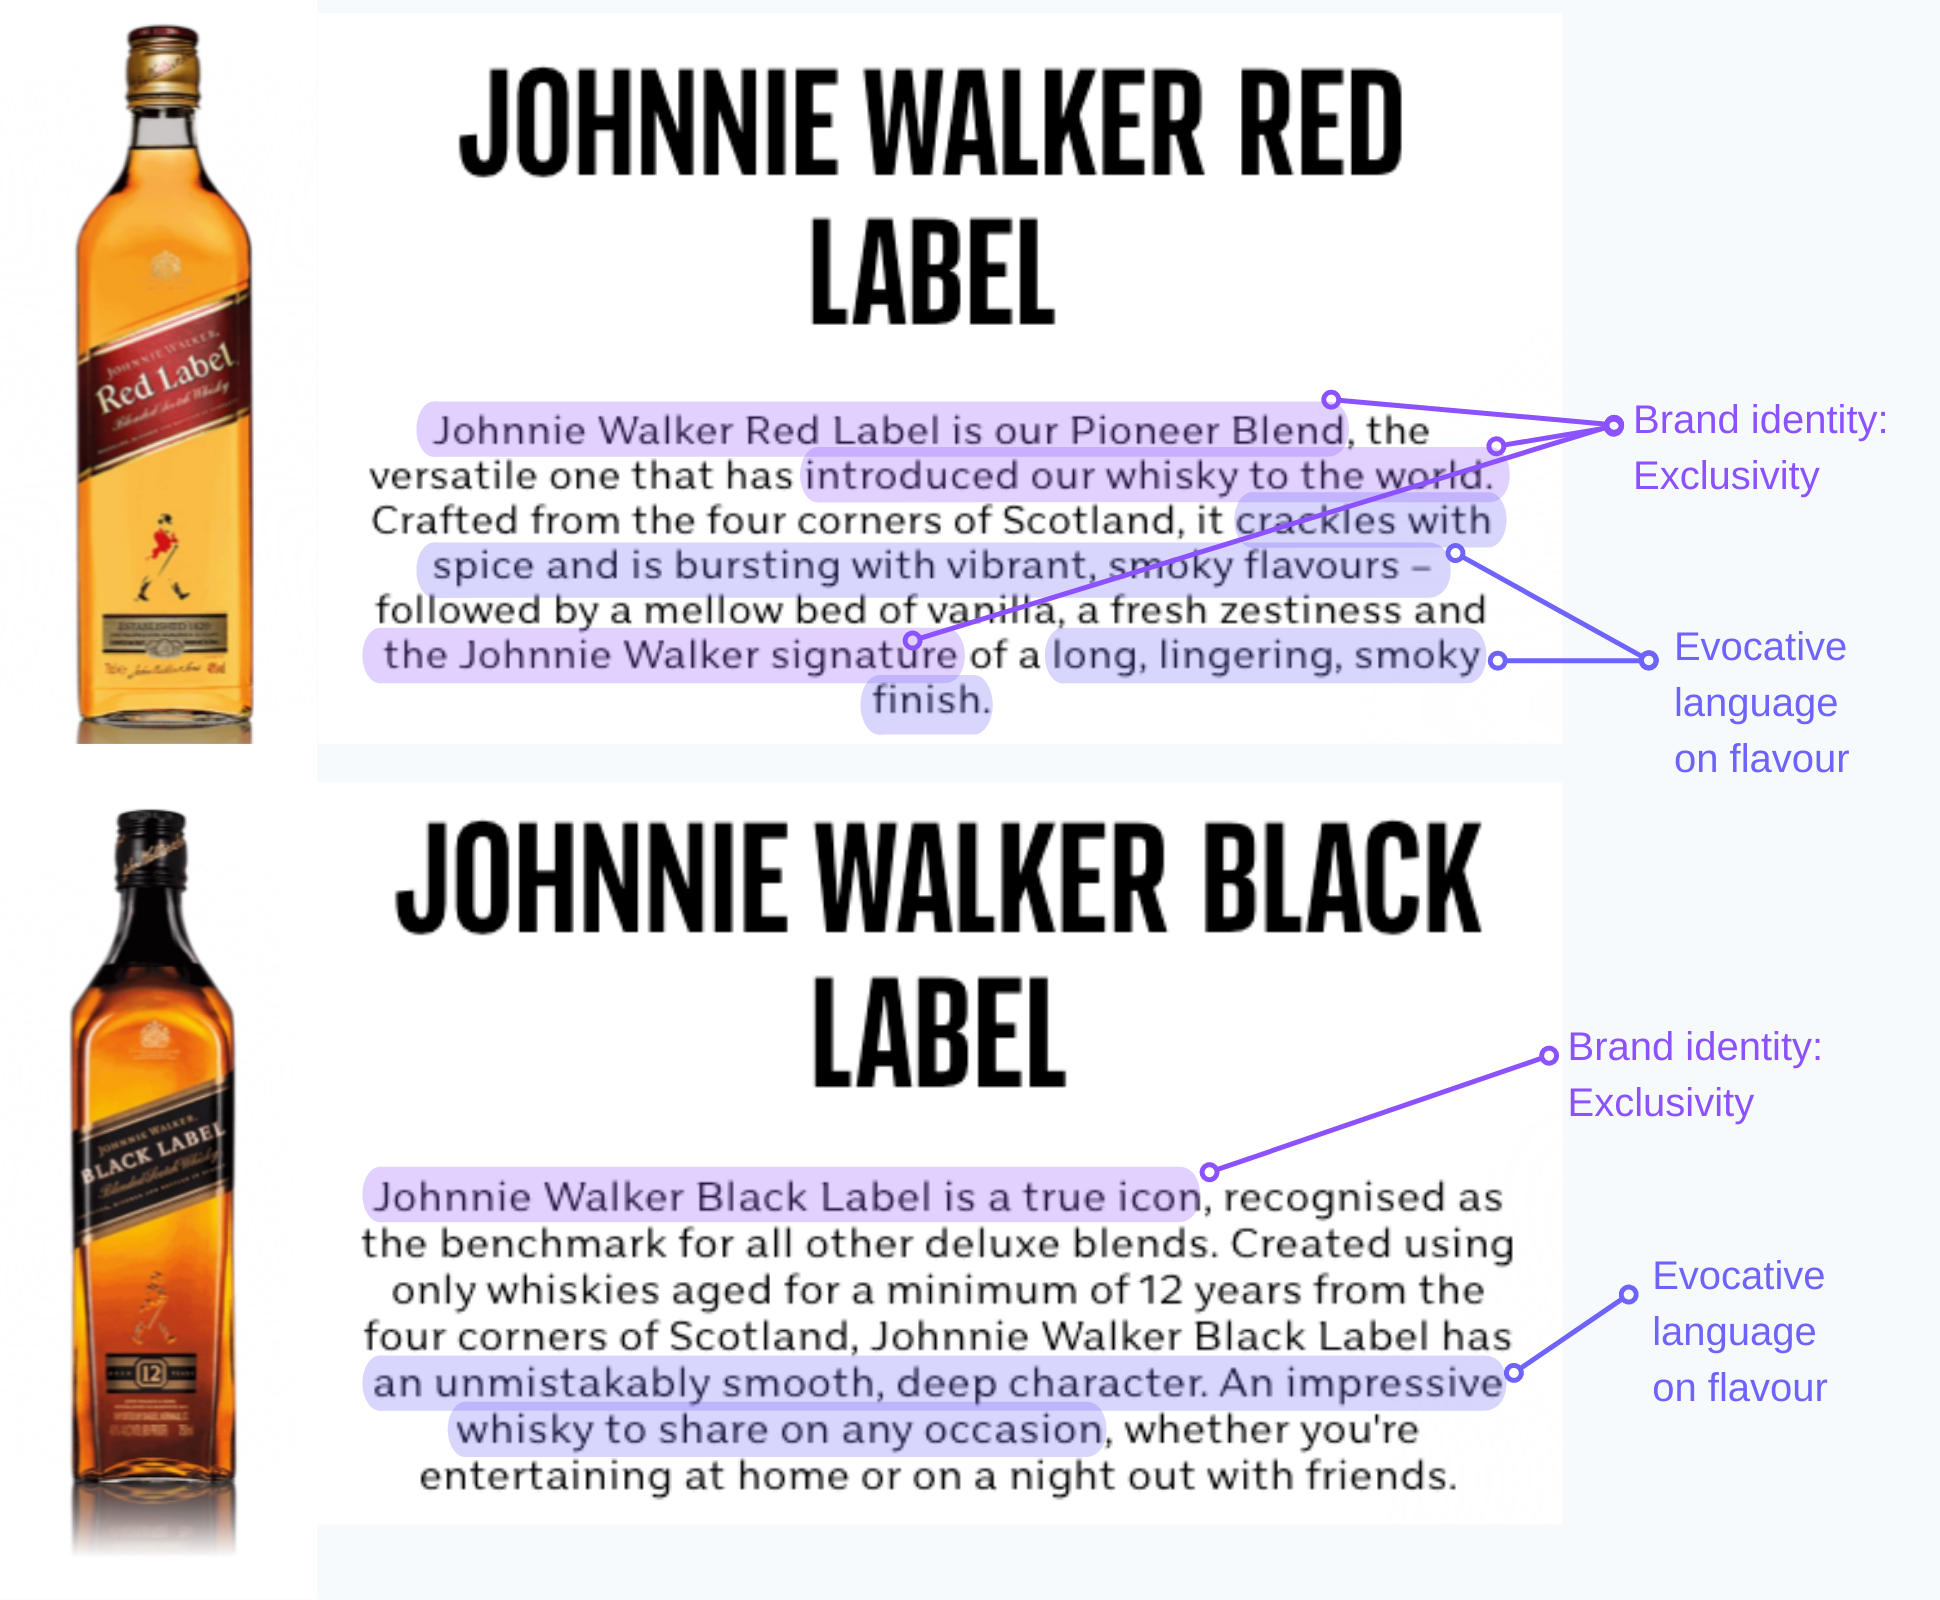 Example from Johnnie Walker's strong brand voice in product d